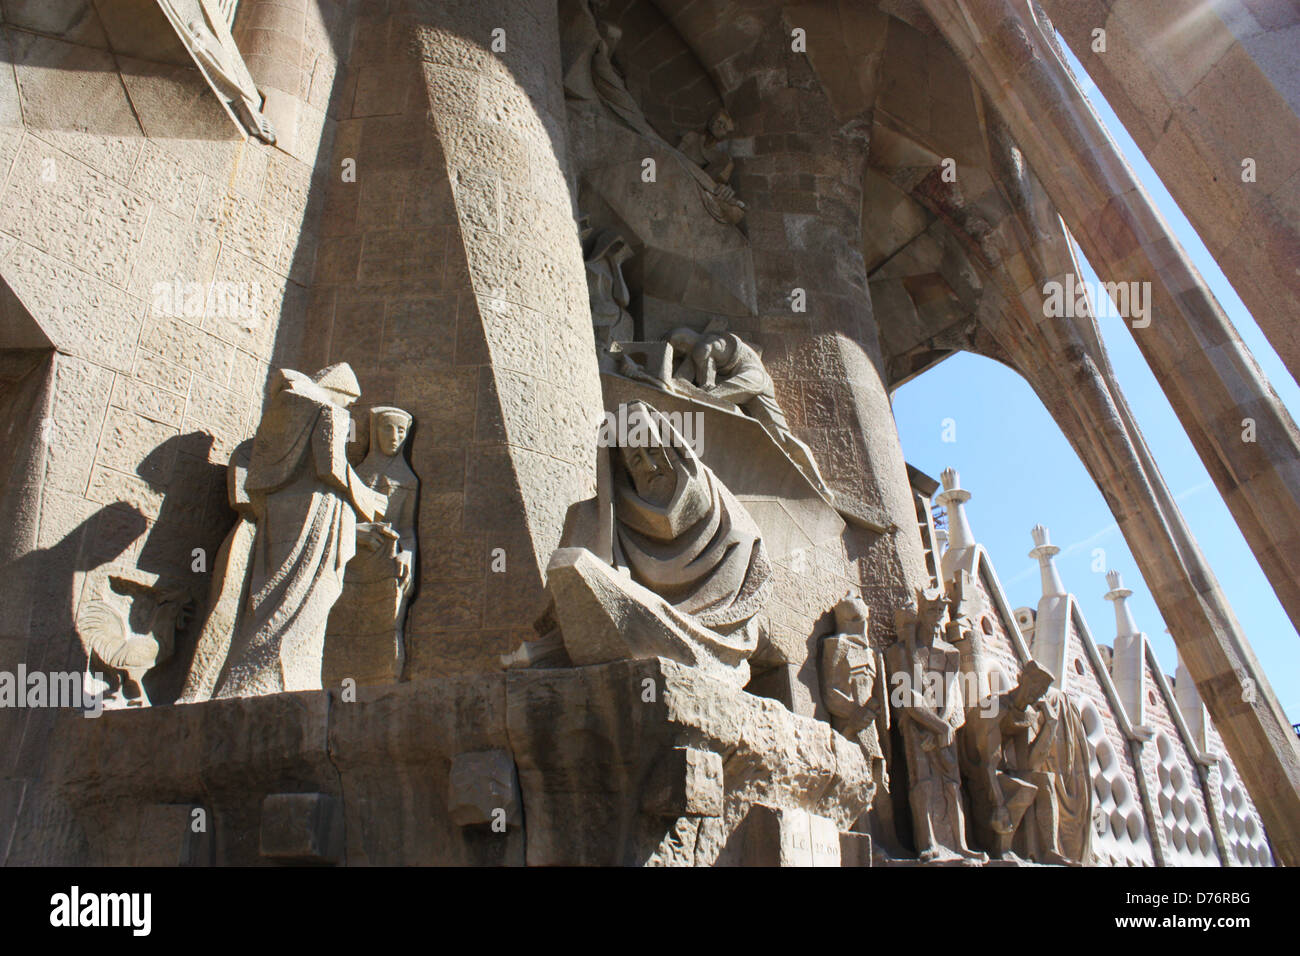 Sagrada Familia statues in Barcelona, Spain Stock Photo